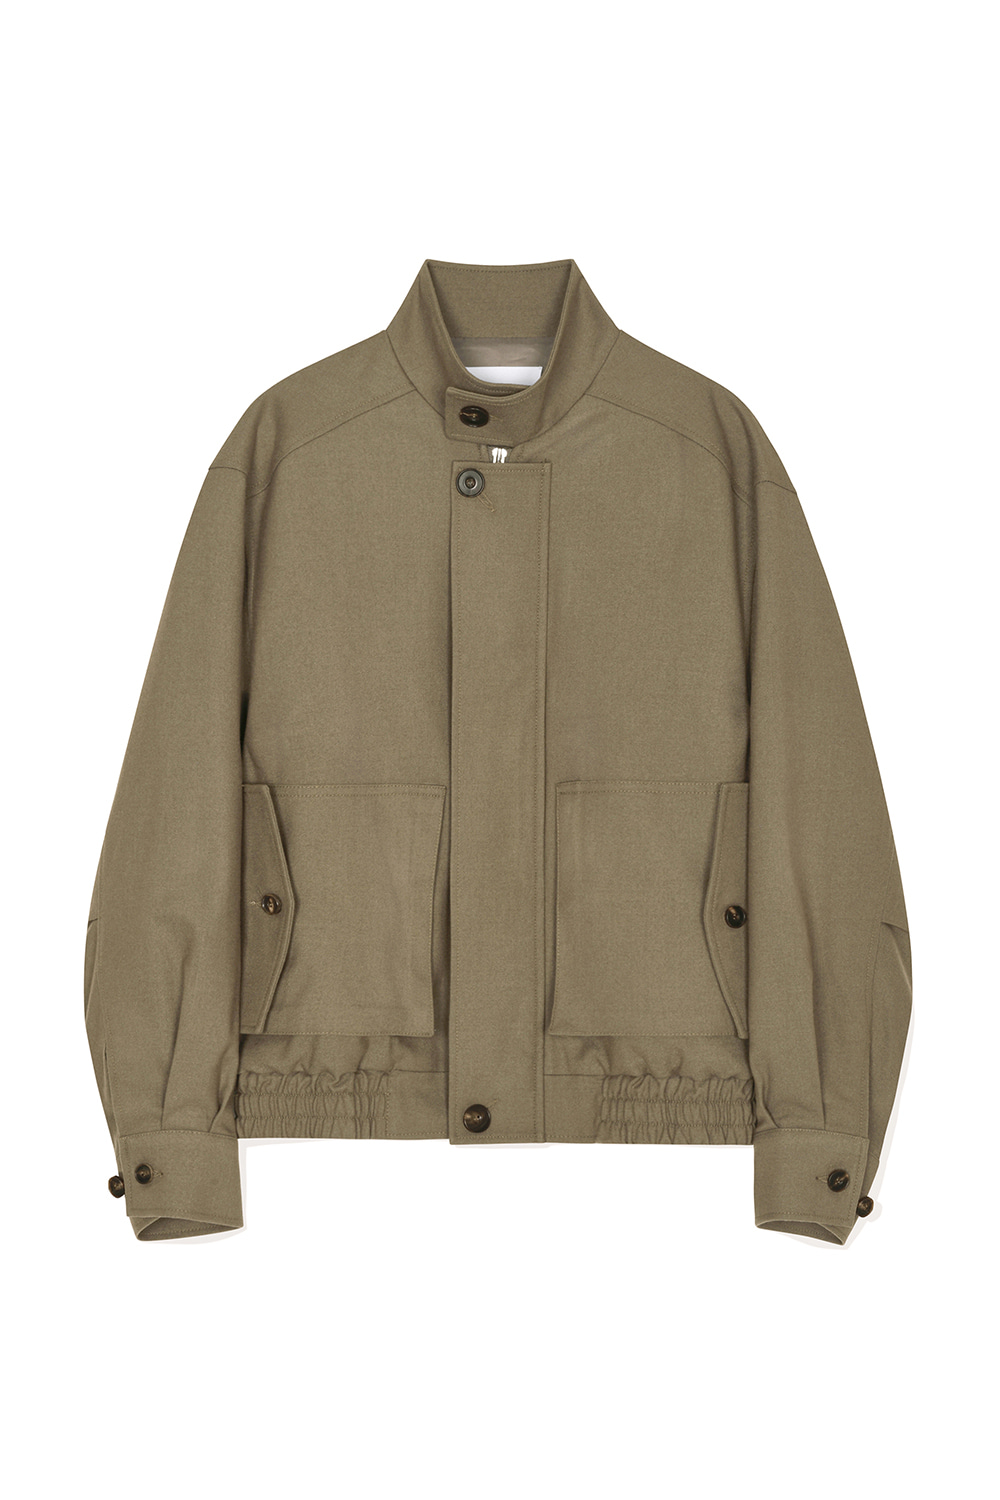 Wool Harrington Jacket Women JA [Sand Beige] -10%